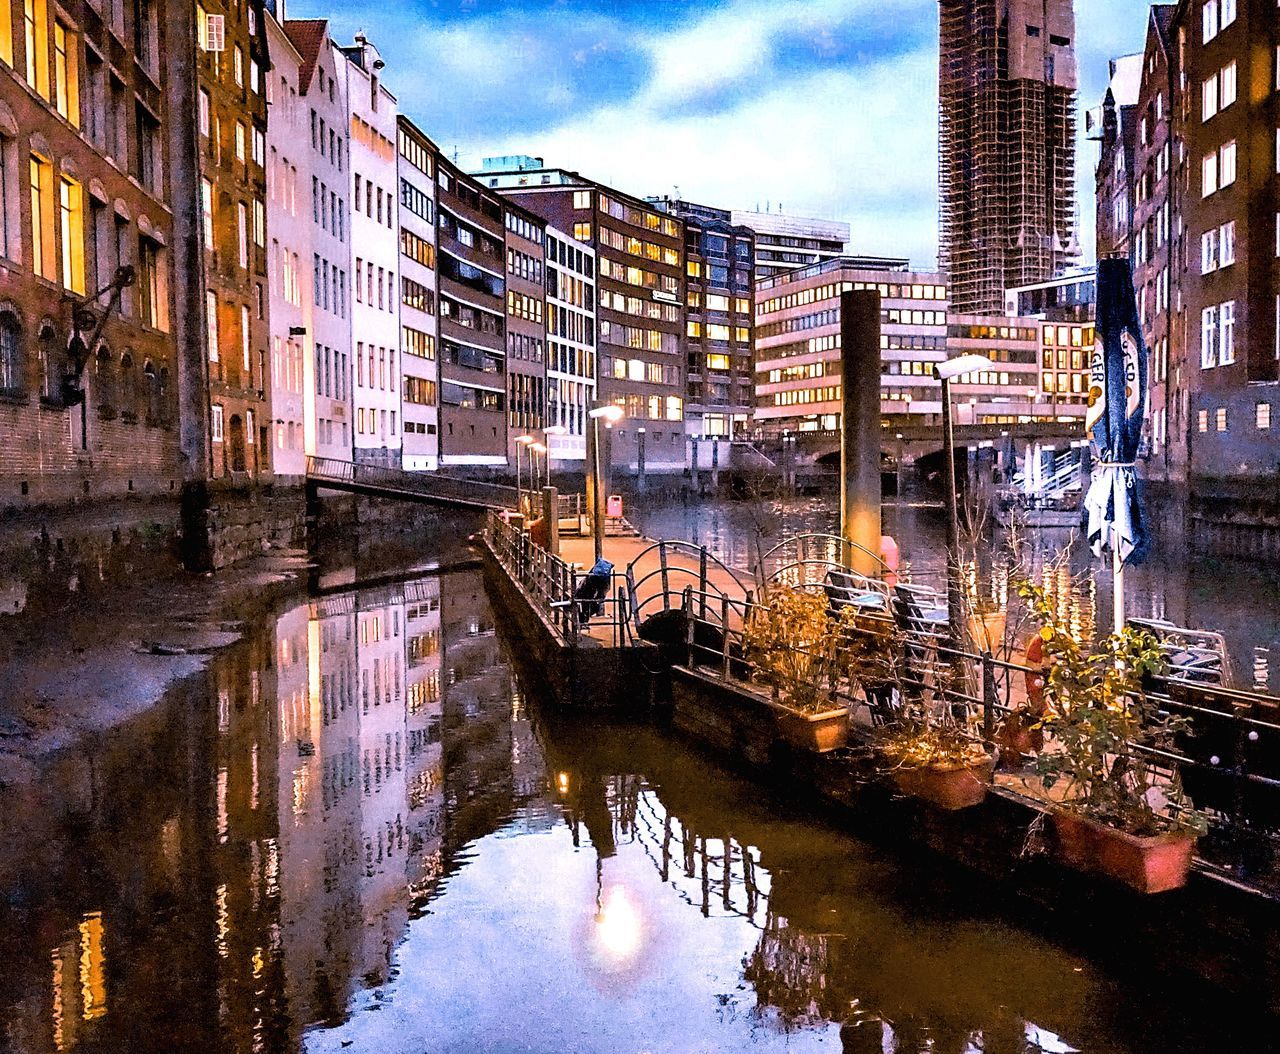 Building Exterior Built Structure Architecture City Reflection Water Canal Outdoors Waterfront Building Real People Sky Working Day Cityscape One Person Nature Fleet Canals And Waterways Night Lights